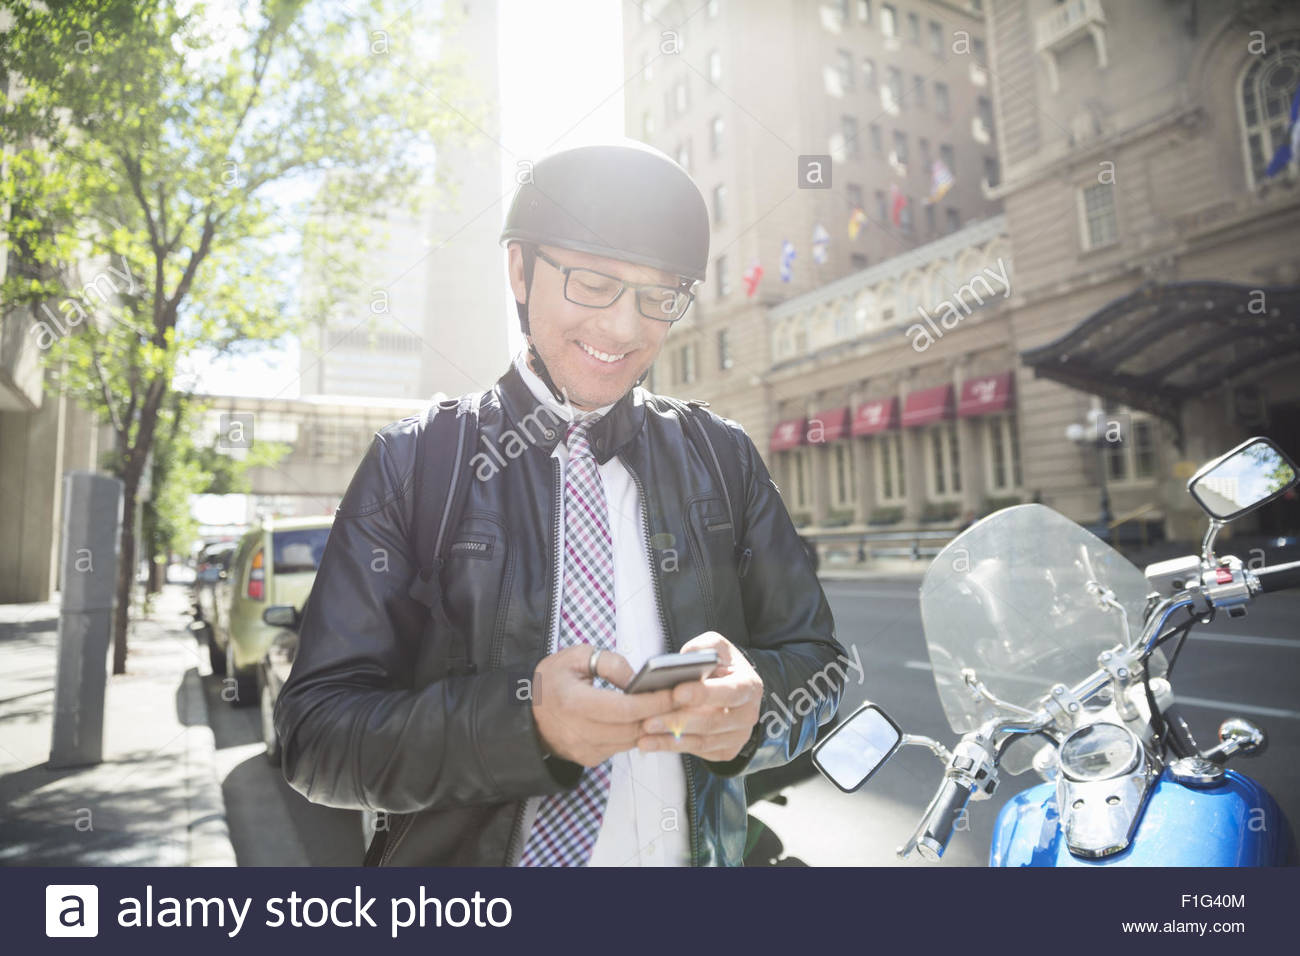 Businessman commuting on motorcycle texting with cell phone - Stock Image